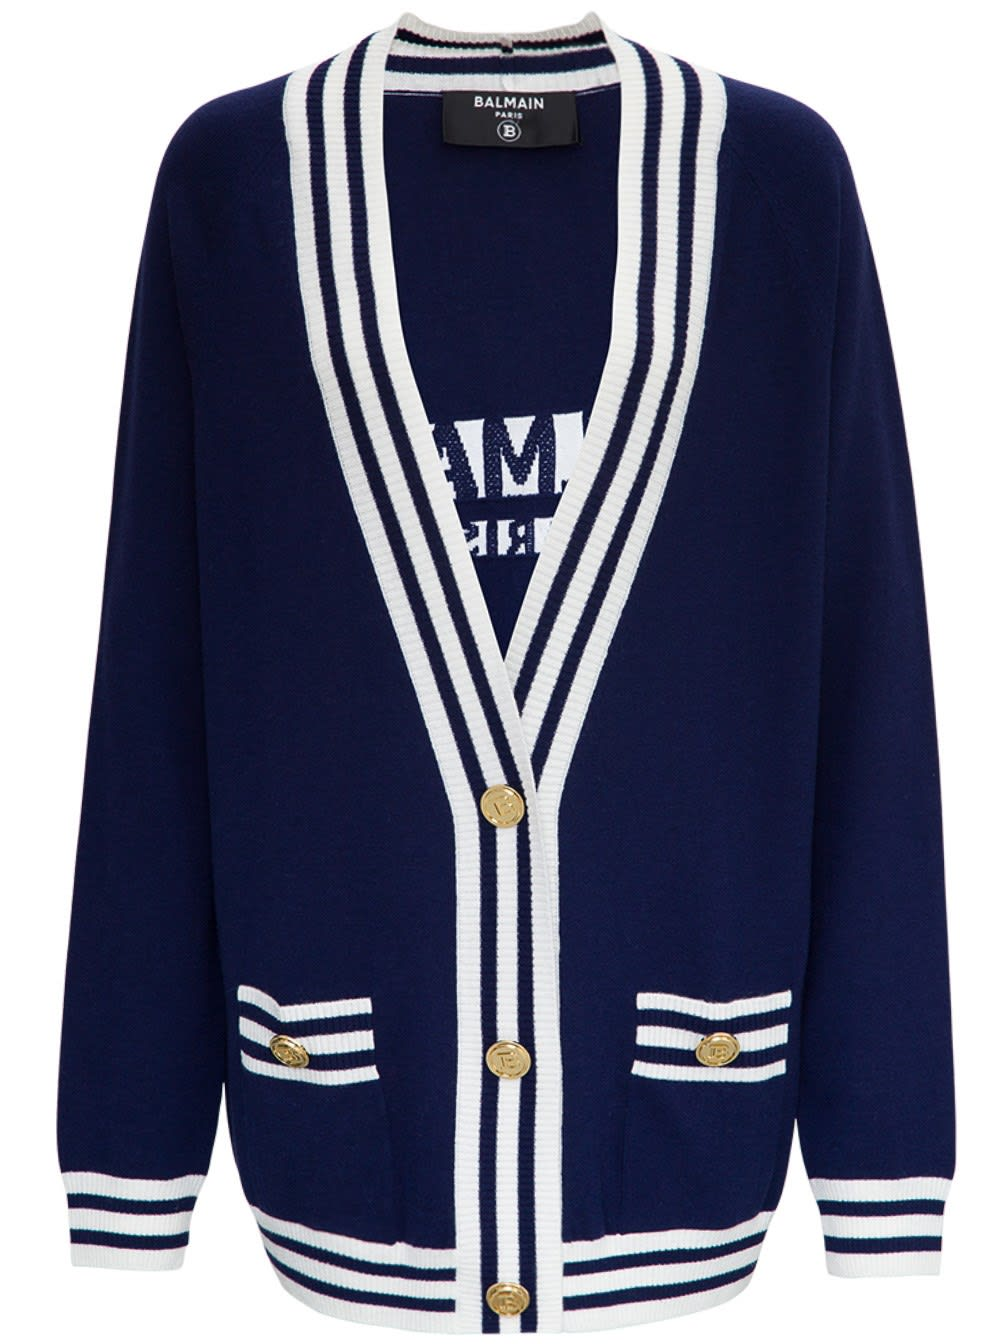 Balmain BLUE CARDIGAN IN WOOL BLEND WITH BACK LOGO